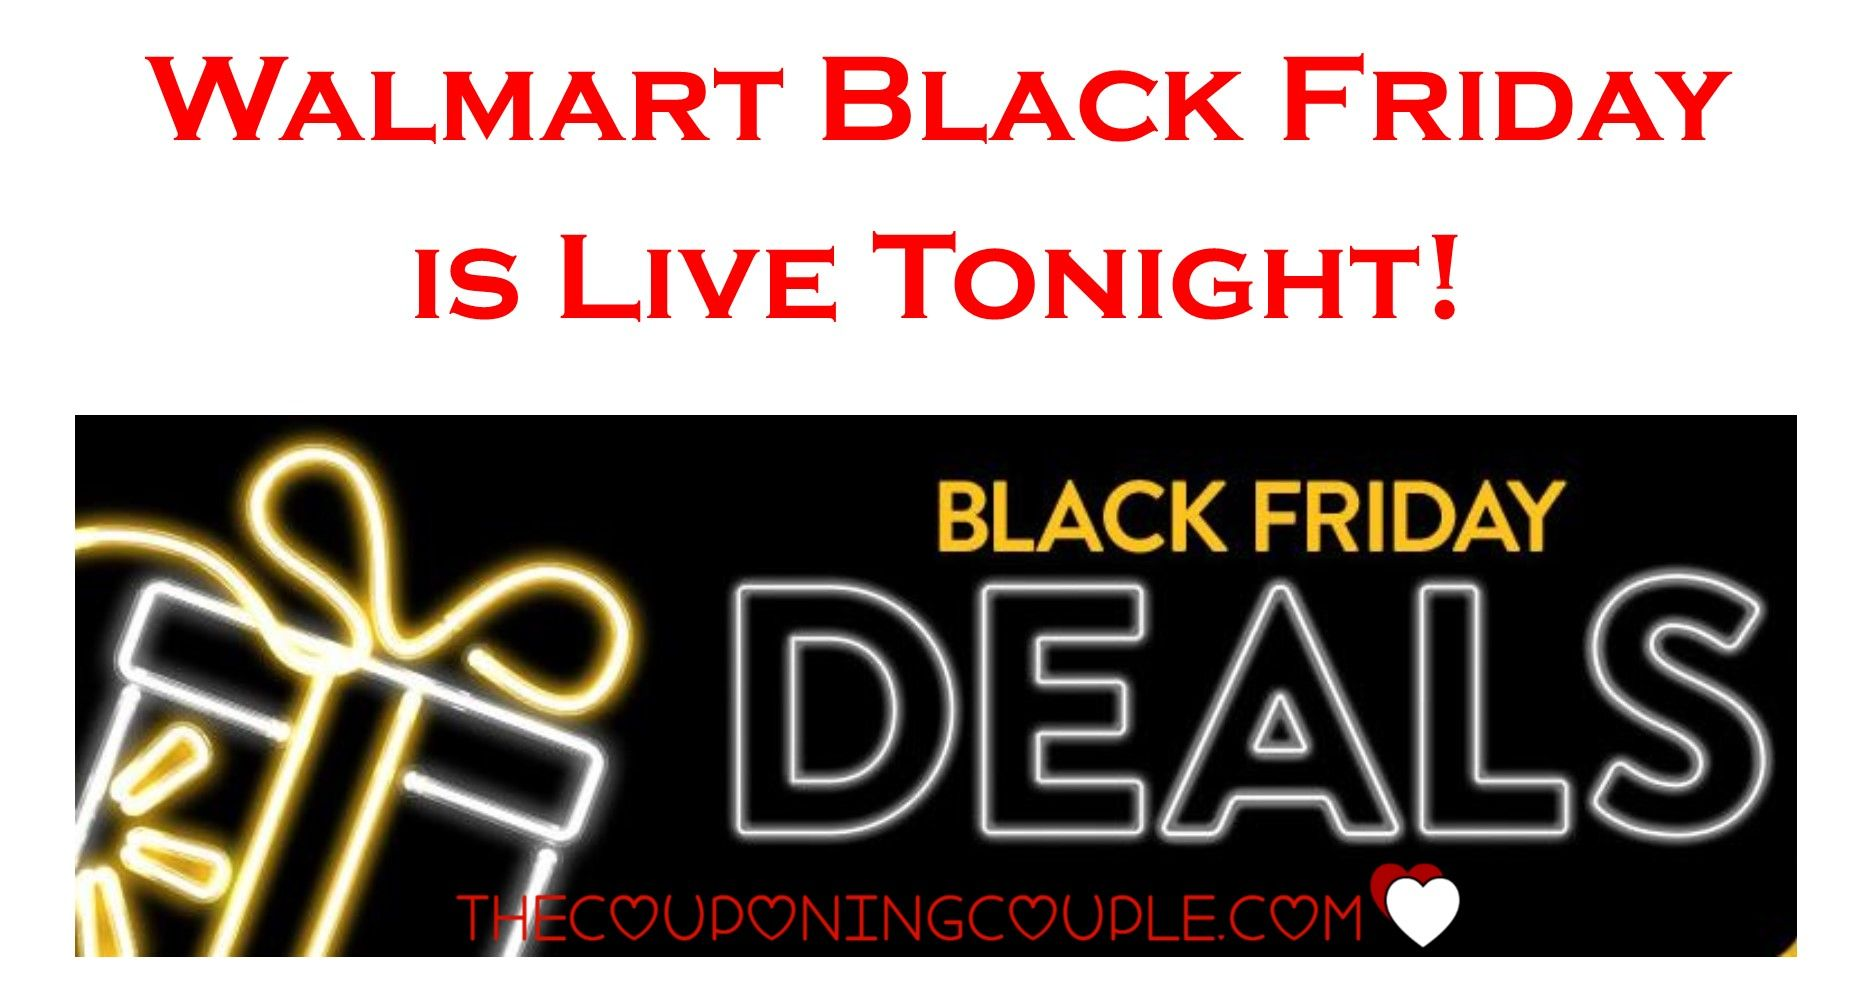 Walmart Black Friday Ad 2019 Just Released BROWSE All 32